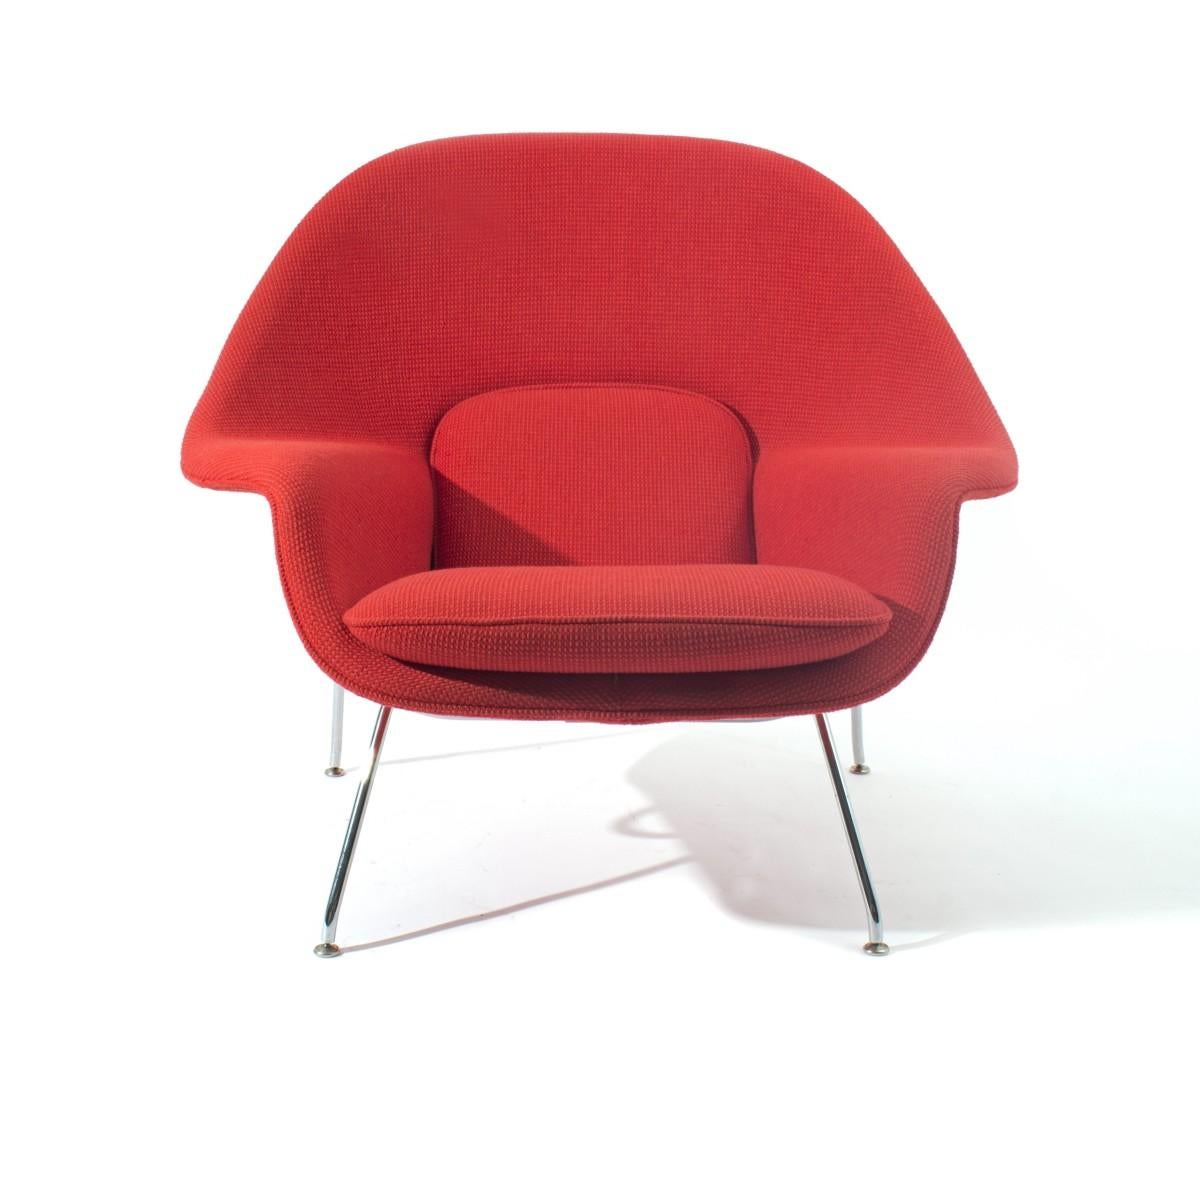 Vintage Womb Chair By Eero Saarinen For Knoll At 1stdibs